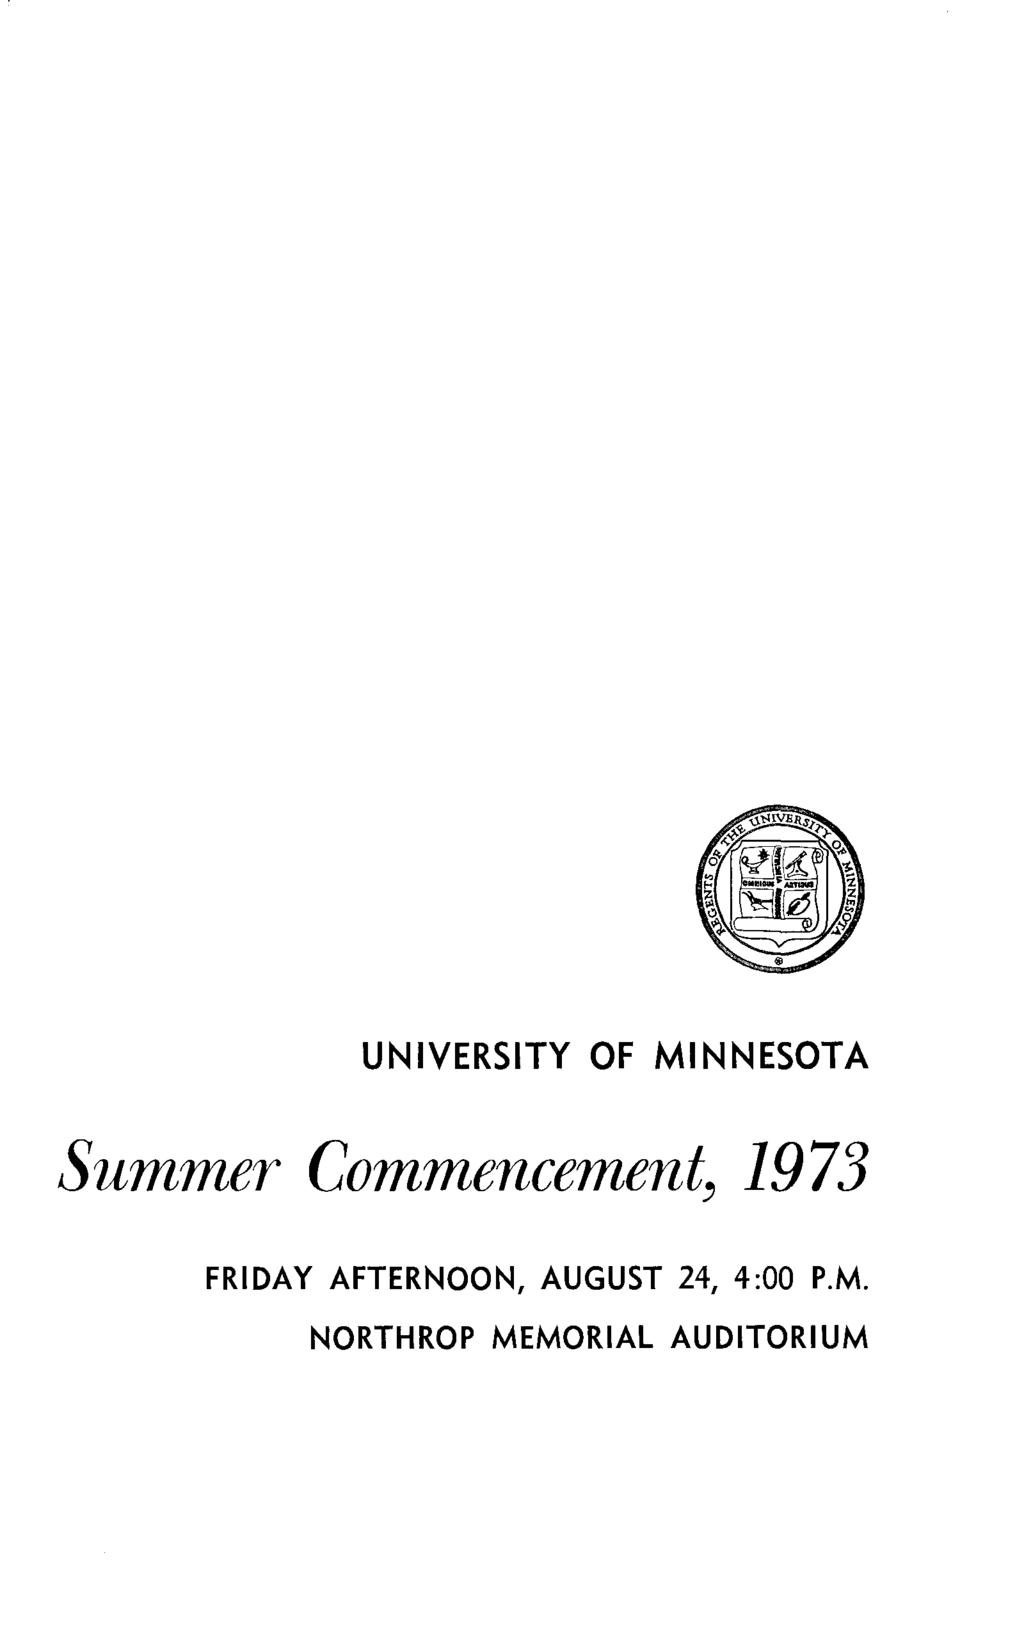 UNIVERSITY OF MINNESOTA Summer Commencement, 1973 FRIDAY